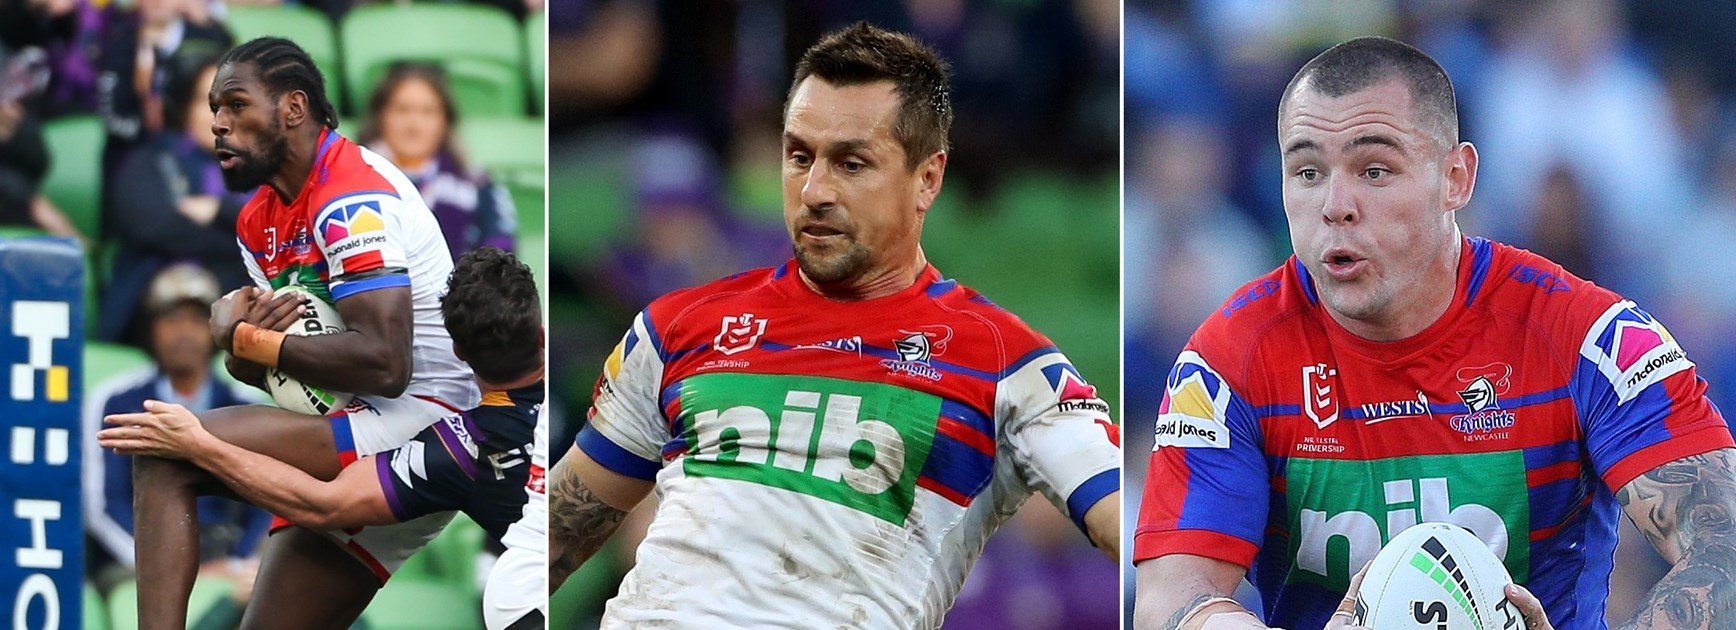 Update: Pearce injury explained, Lee ruled out of Qld camp